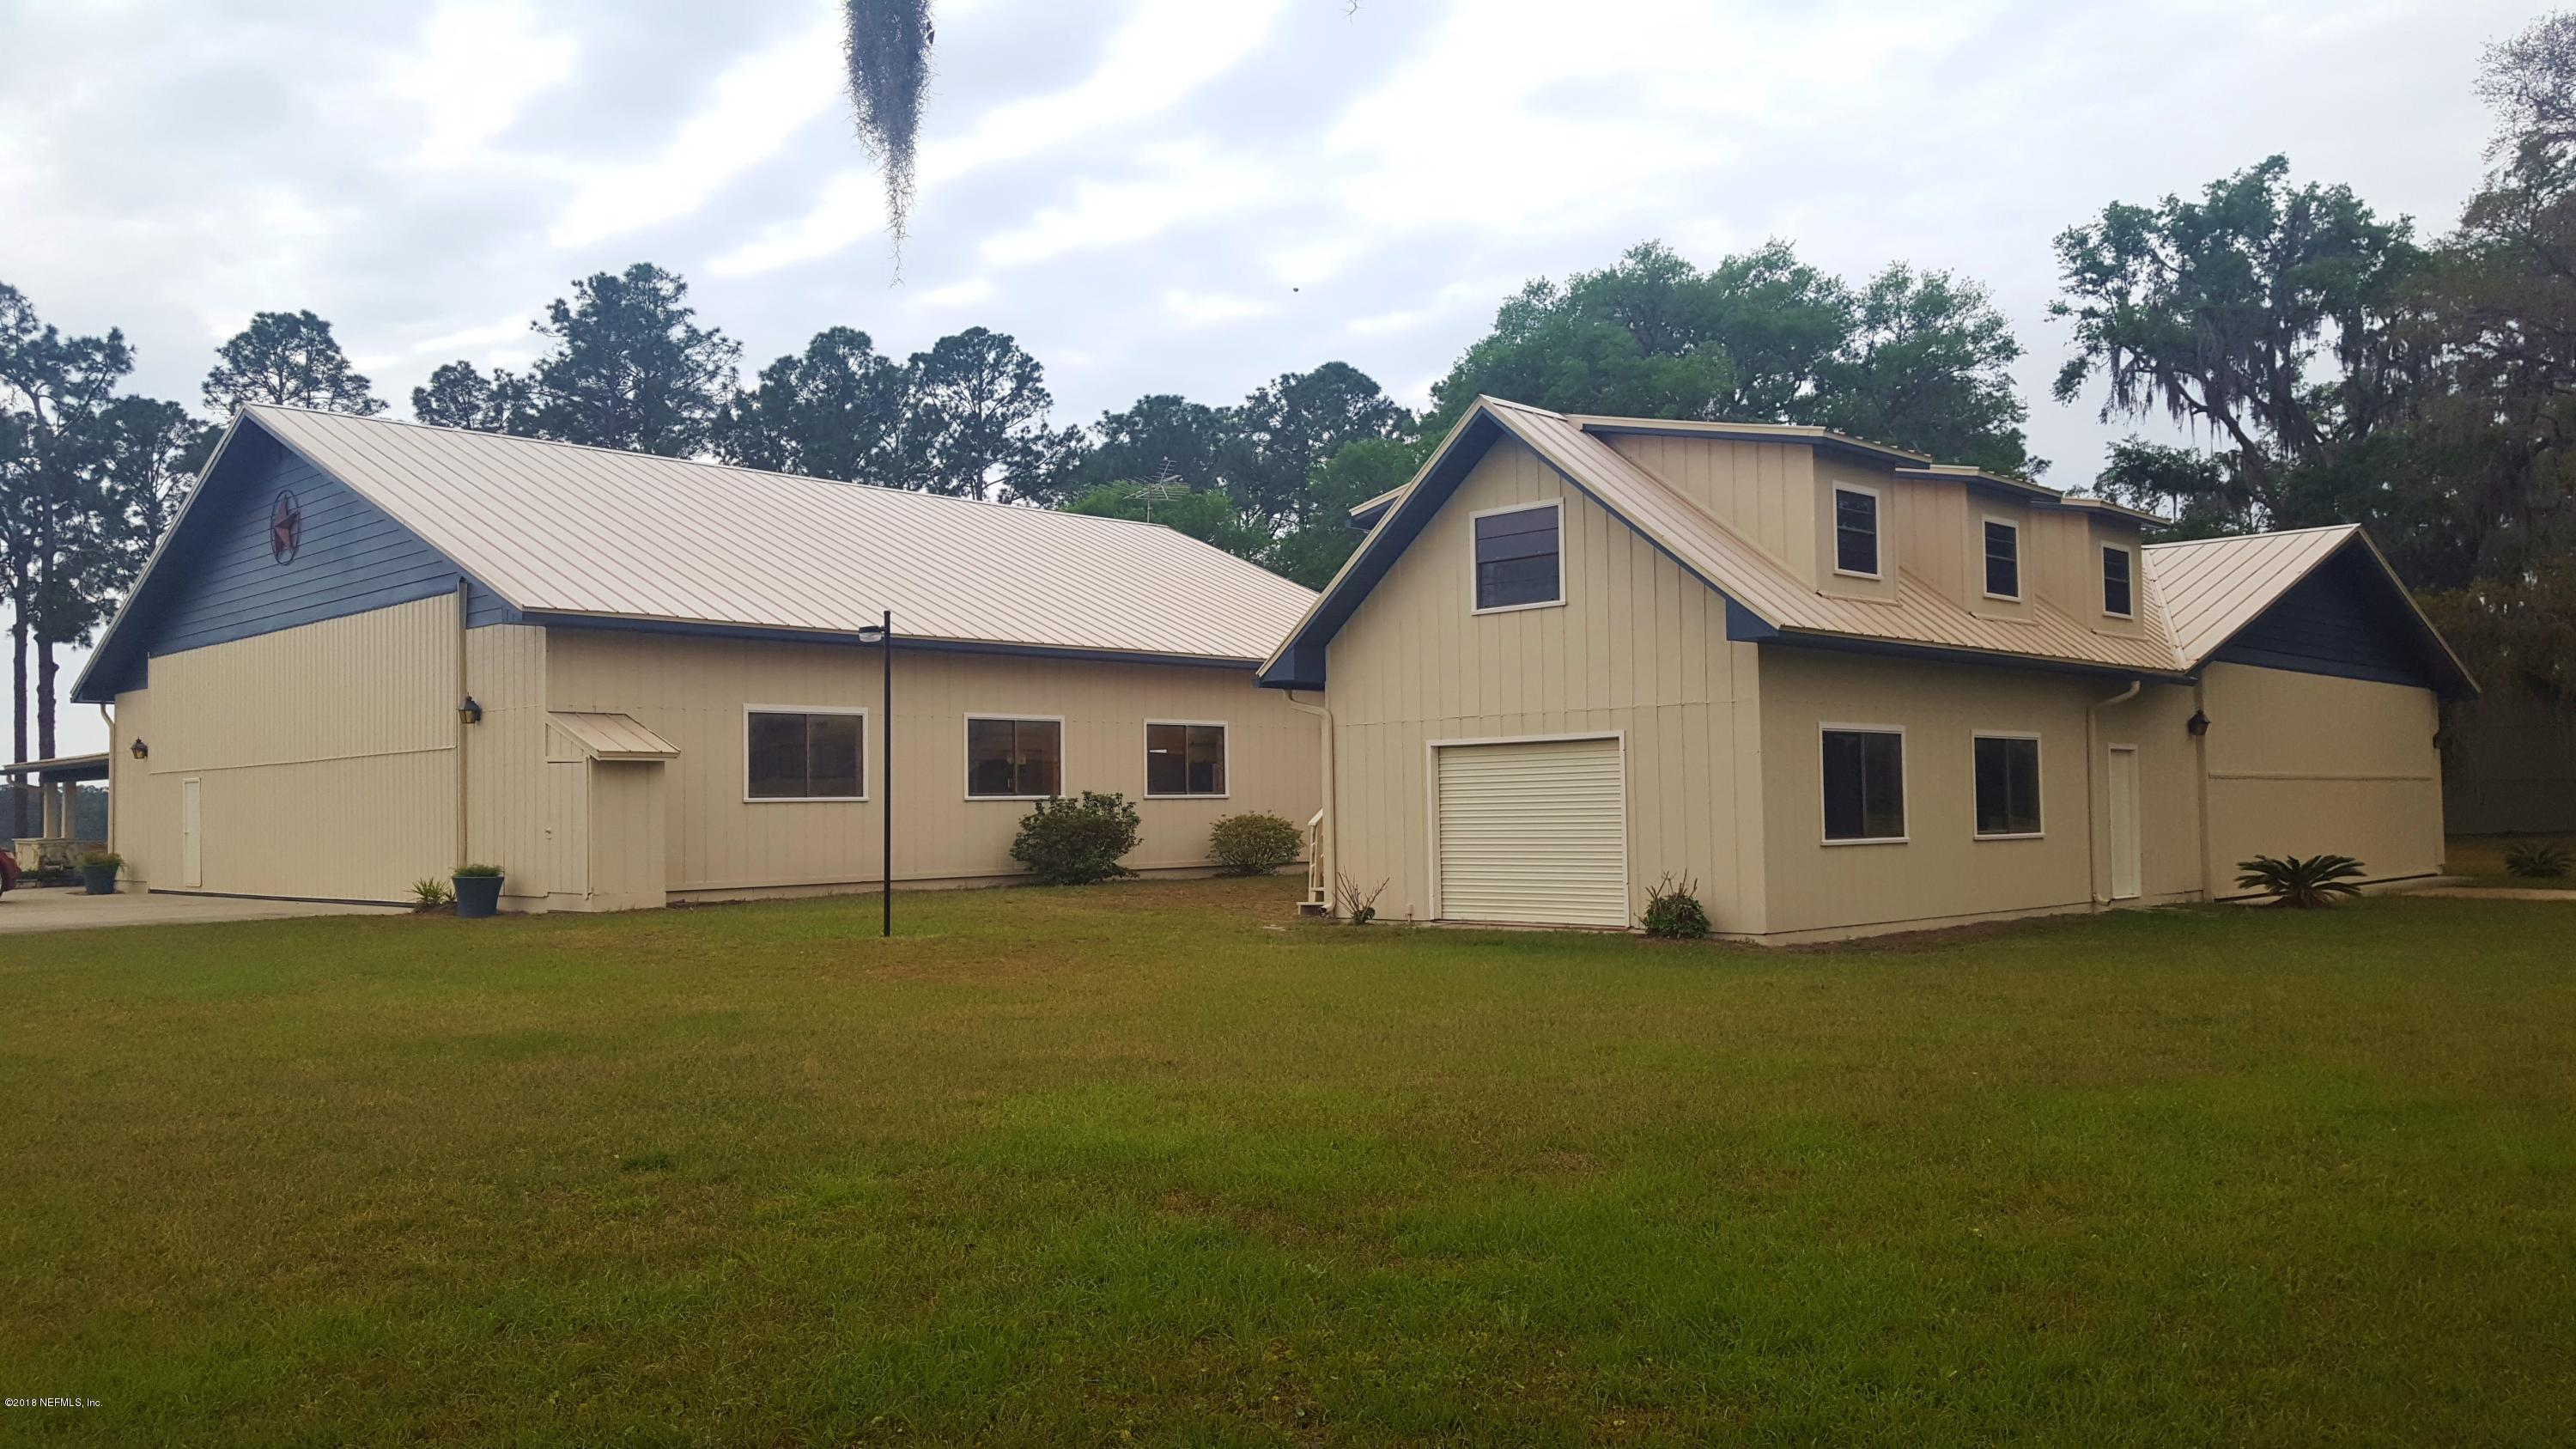 107 EAGLES NEST, CRESCENT CITY, FLORIDA 32112, 3 Bedrooms Bedrooms, ,3 BathroomsBathrooms,Residential - single family,For sale,EAGLES NEST,927194